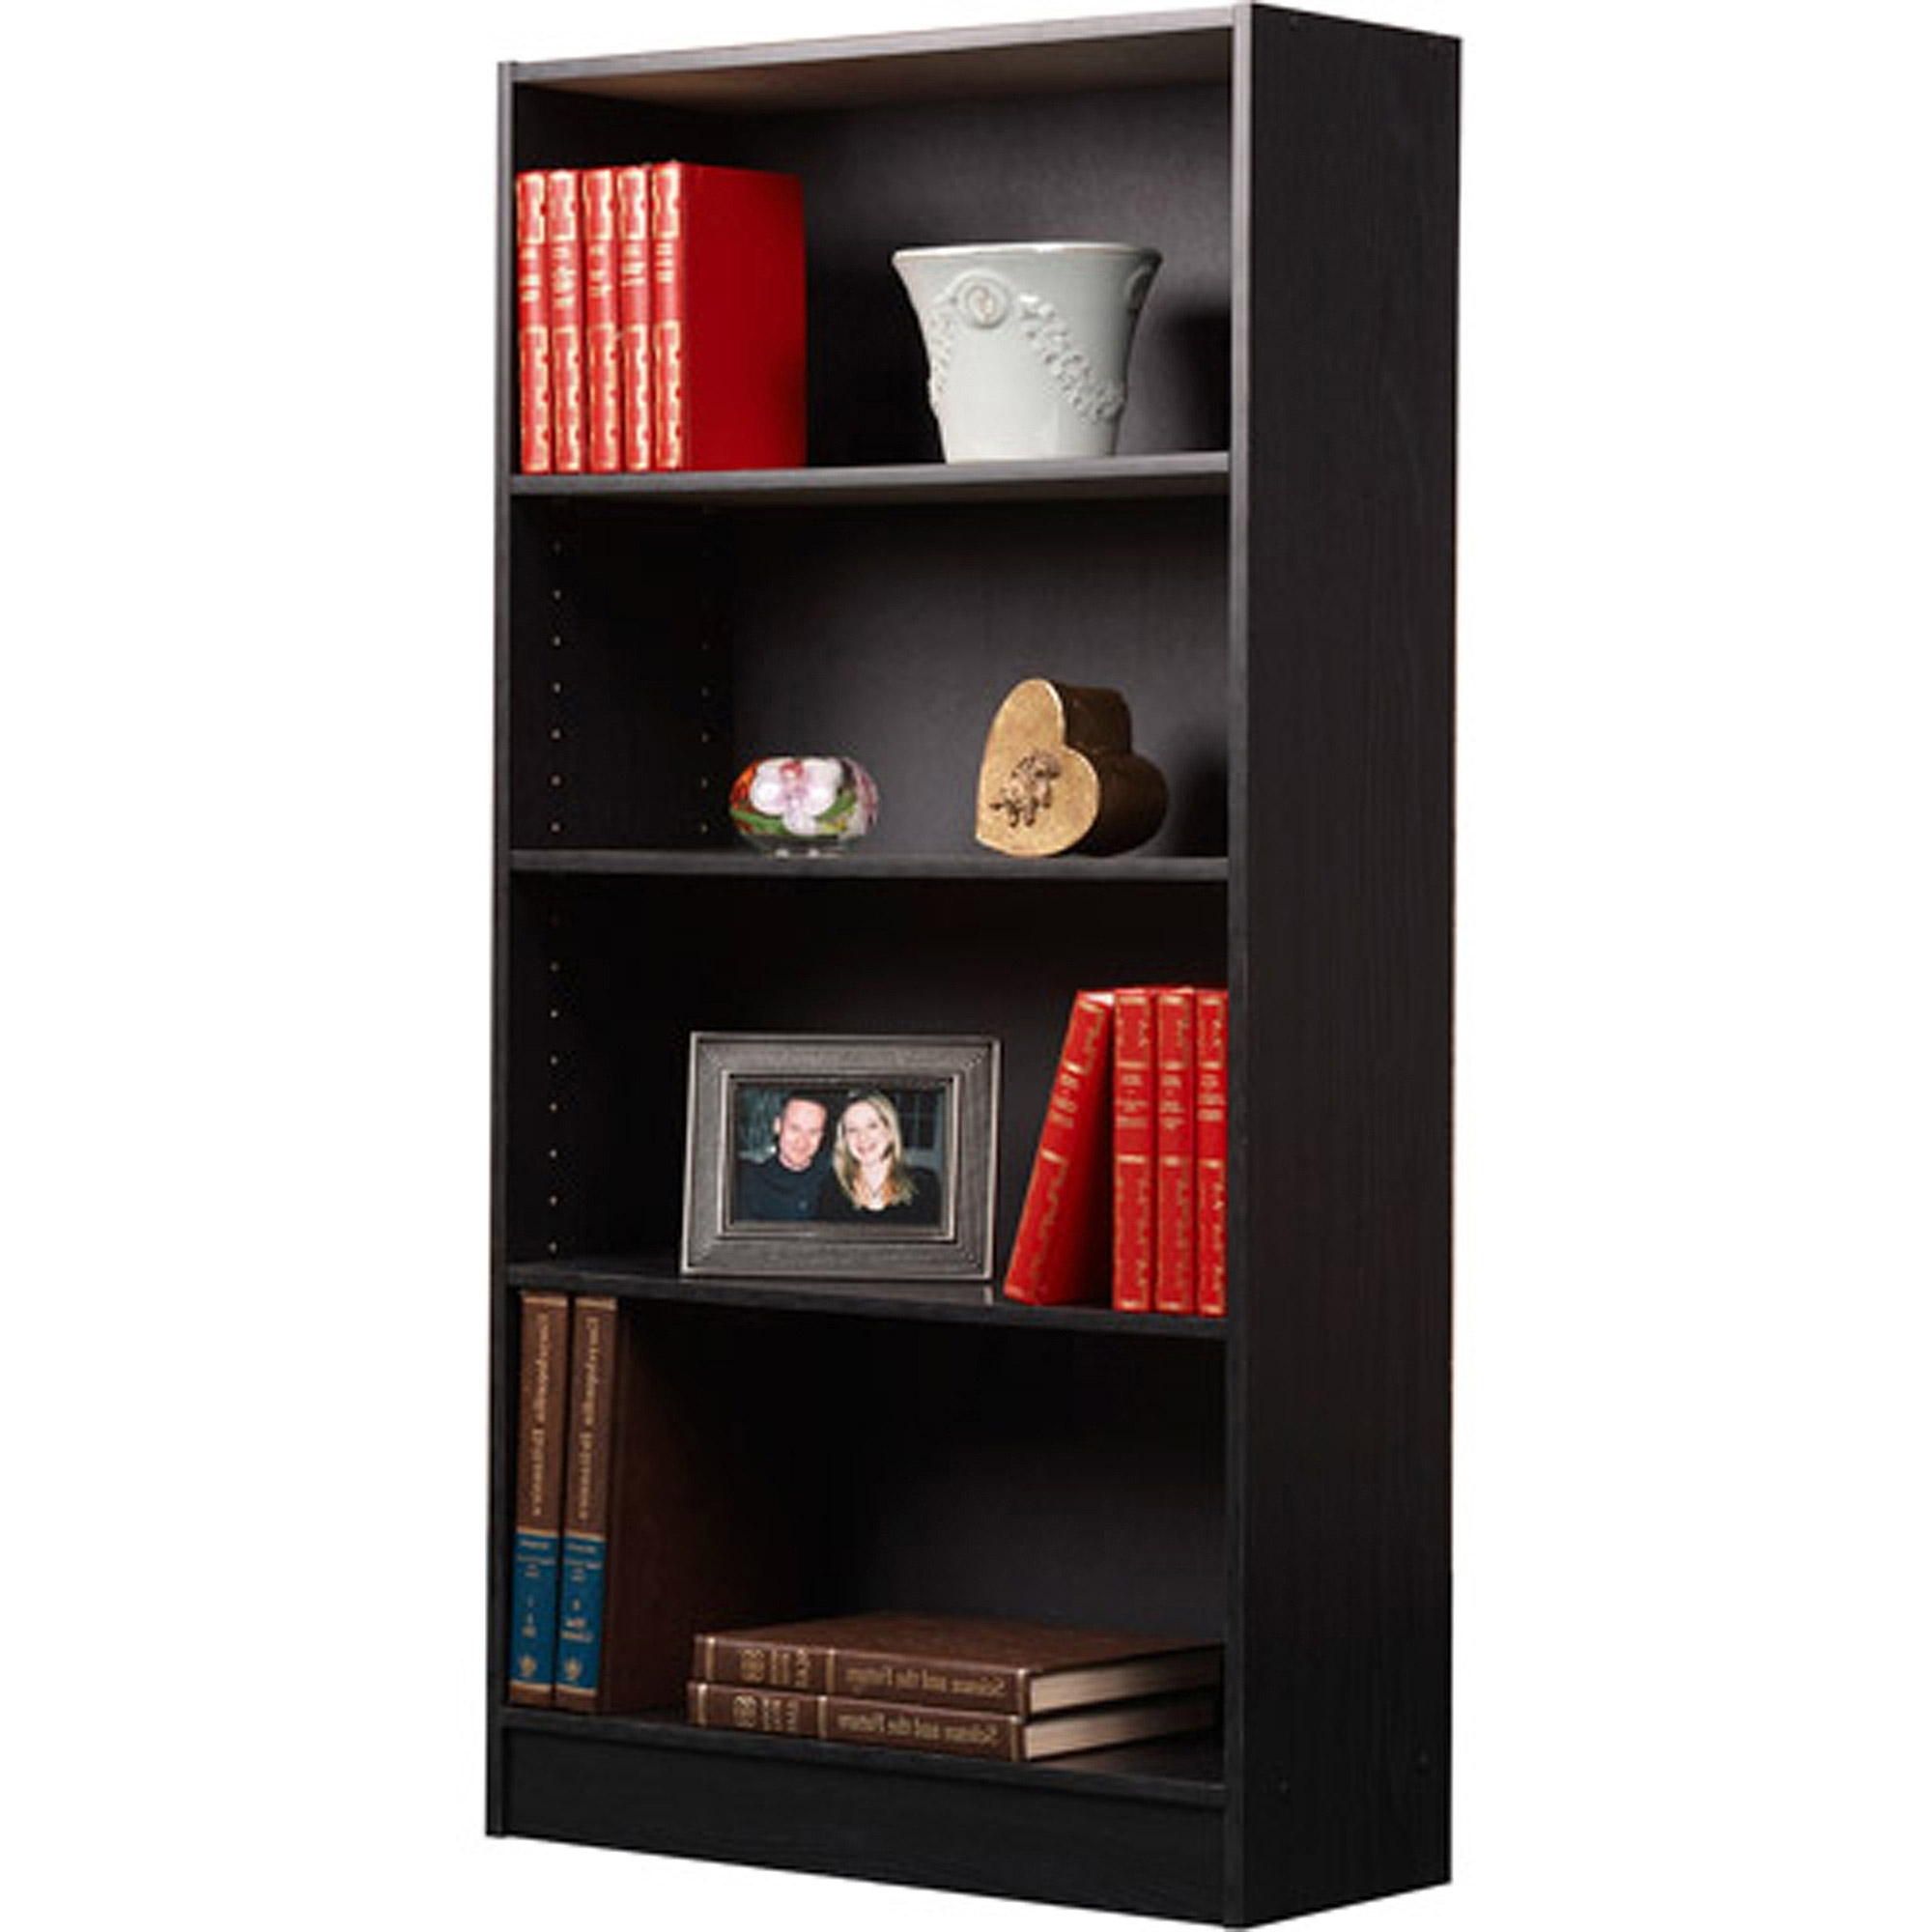 Famous All You Needed To Know About Choosing A Bookcase With Glass Doors Regarding Black Bookcases With Glass Doors (View 14 of 15)